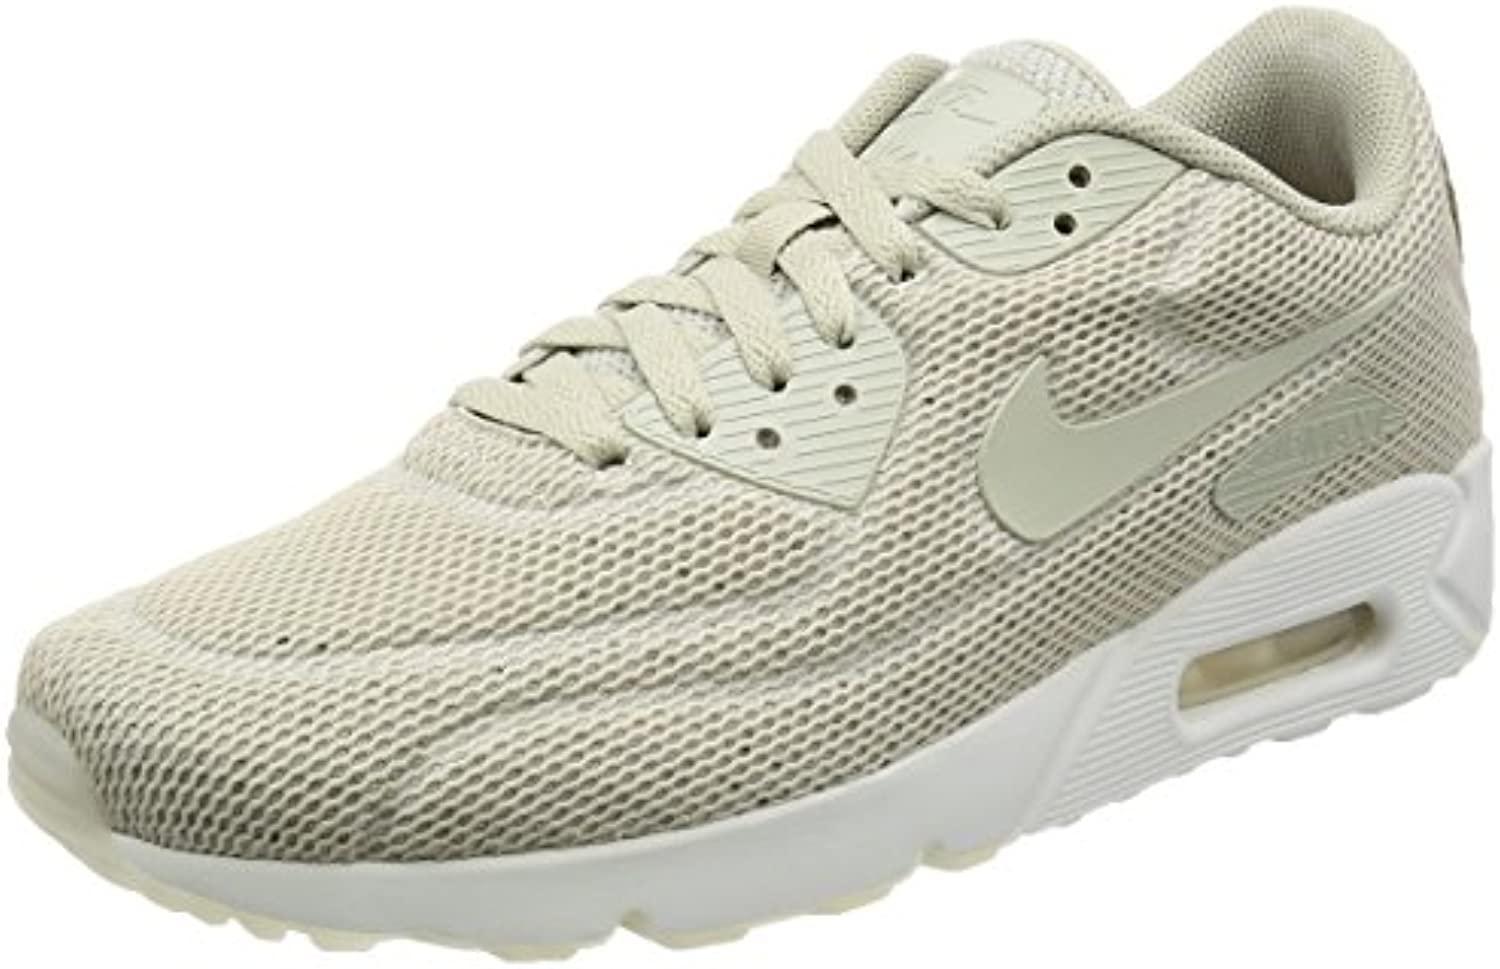 Nike - Air Max 90 Ultra 20 BR - 898010002 - Size: 45.5